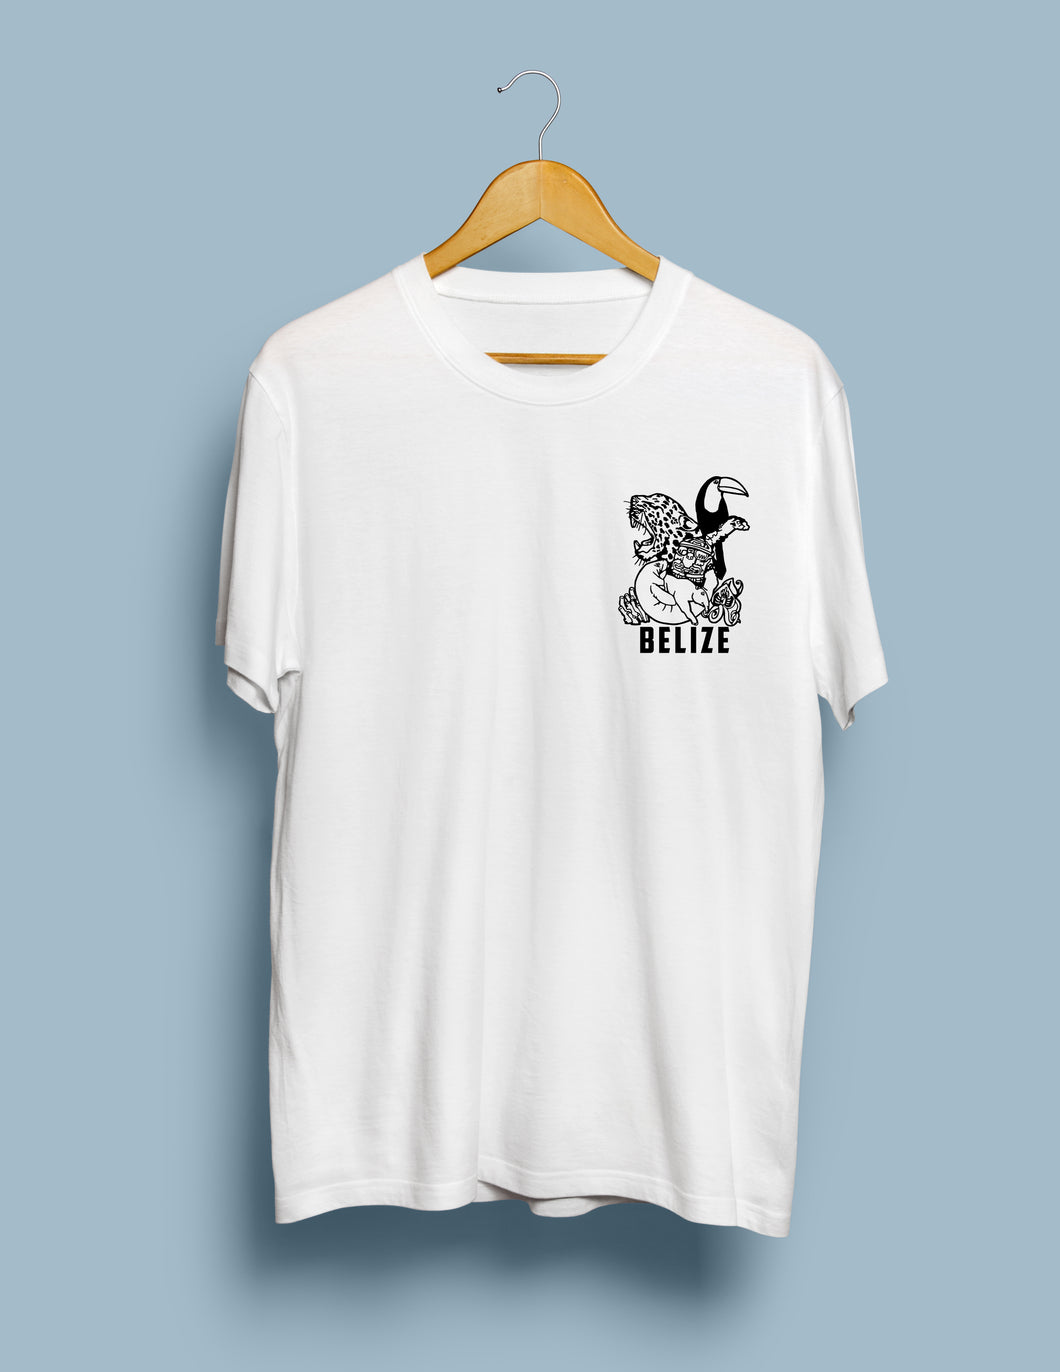 The Heart of Belize T shirt - A&S Covers